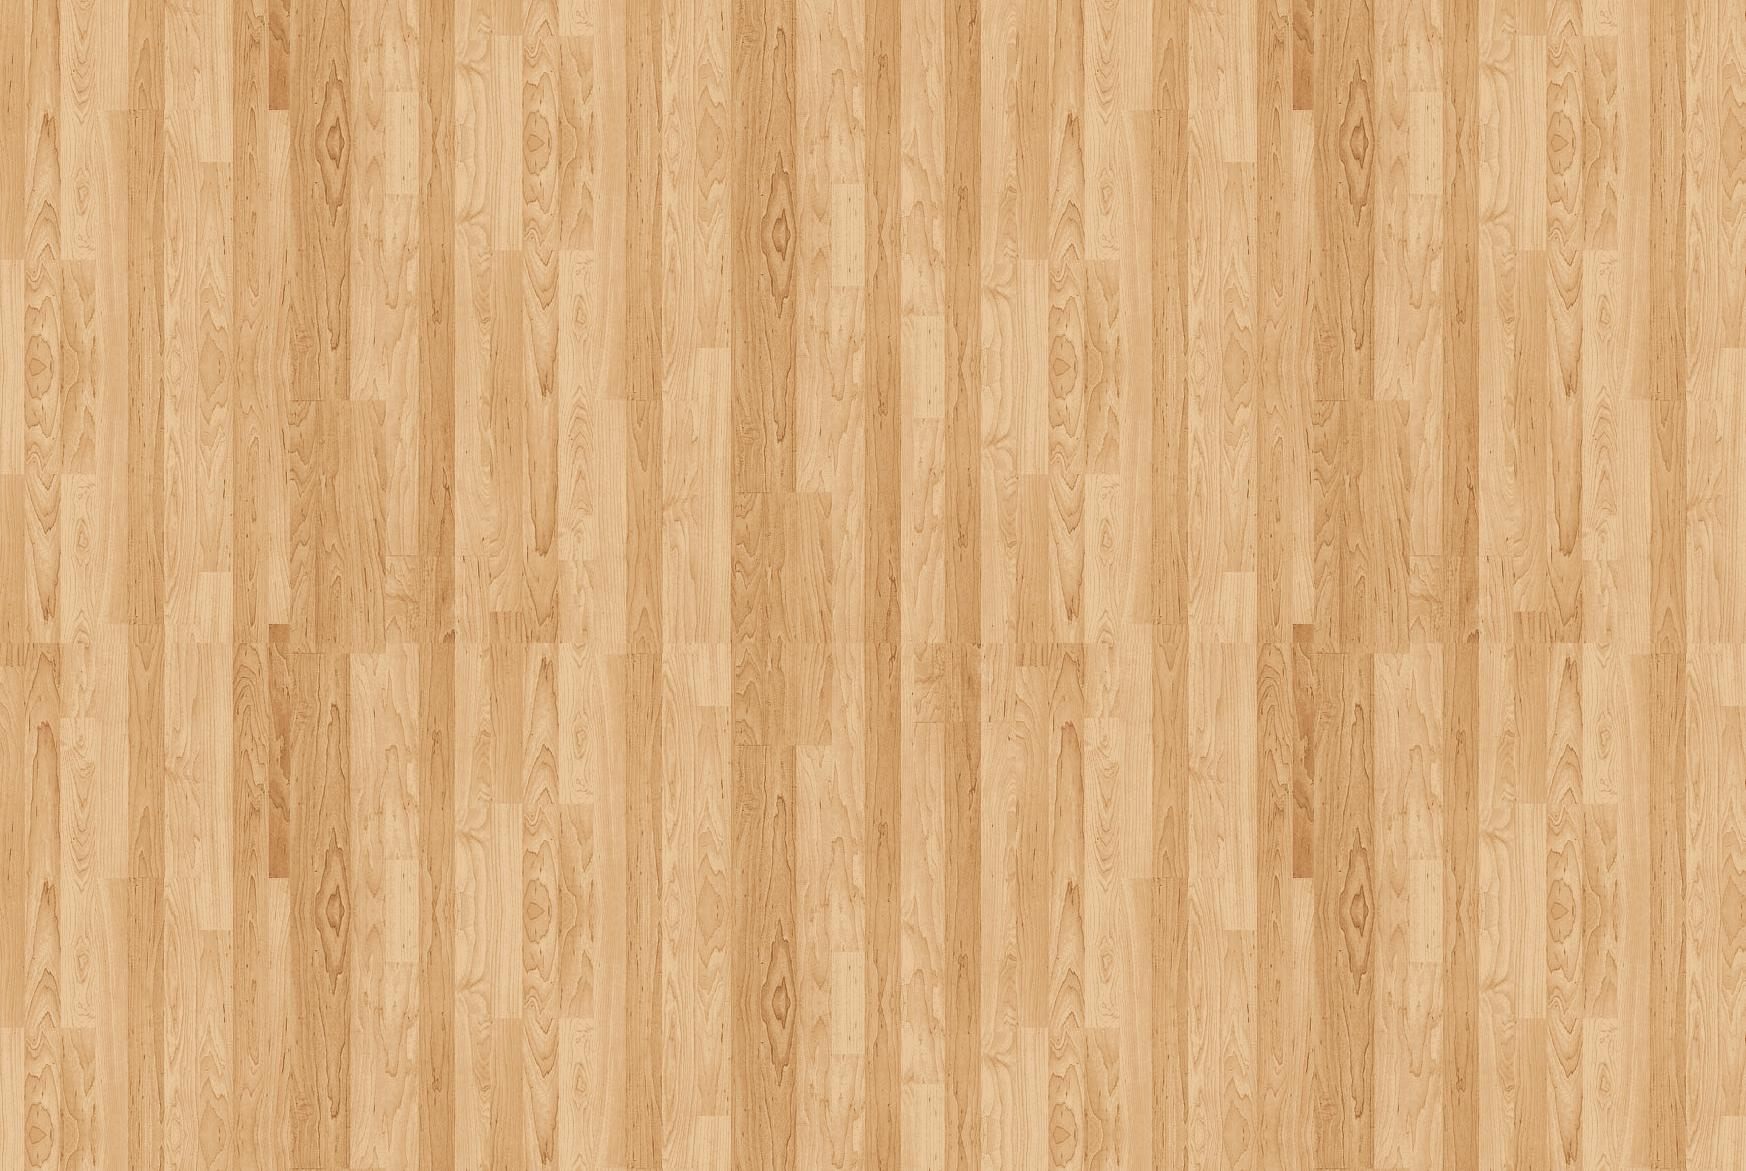 best-ideas-about-Wood-background-on-Pinterest-Wood-texture-wallpaper-wpc9002816